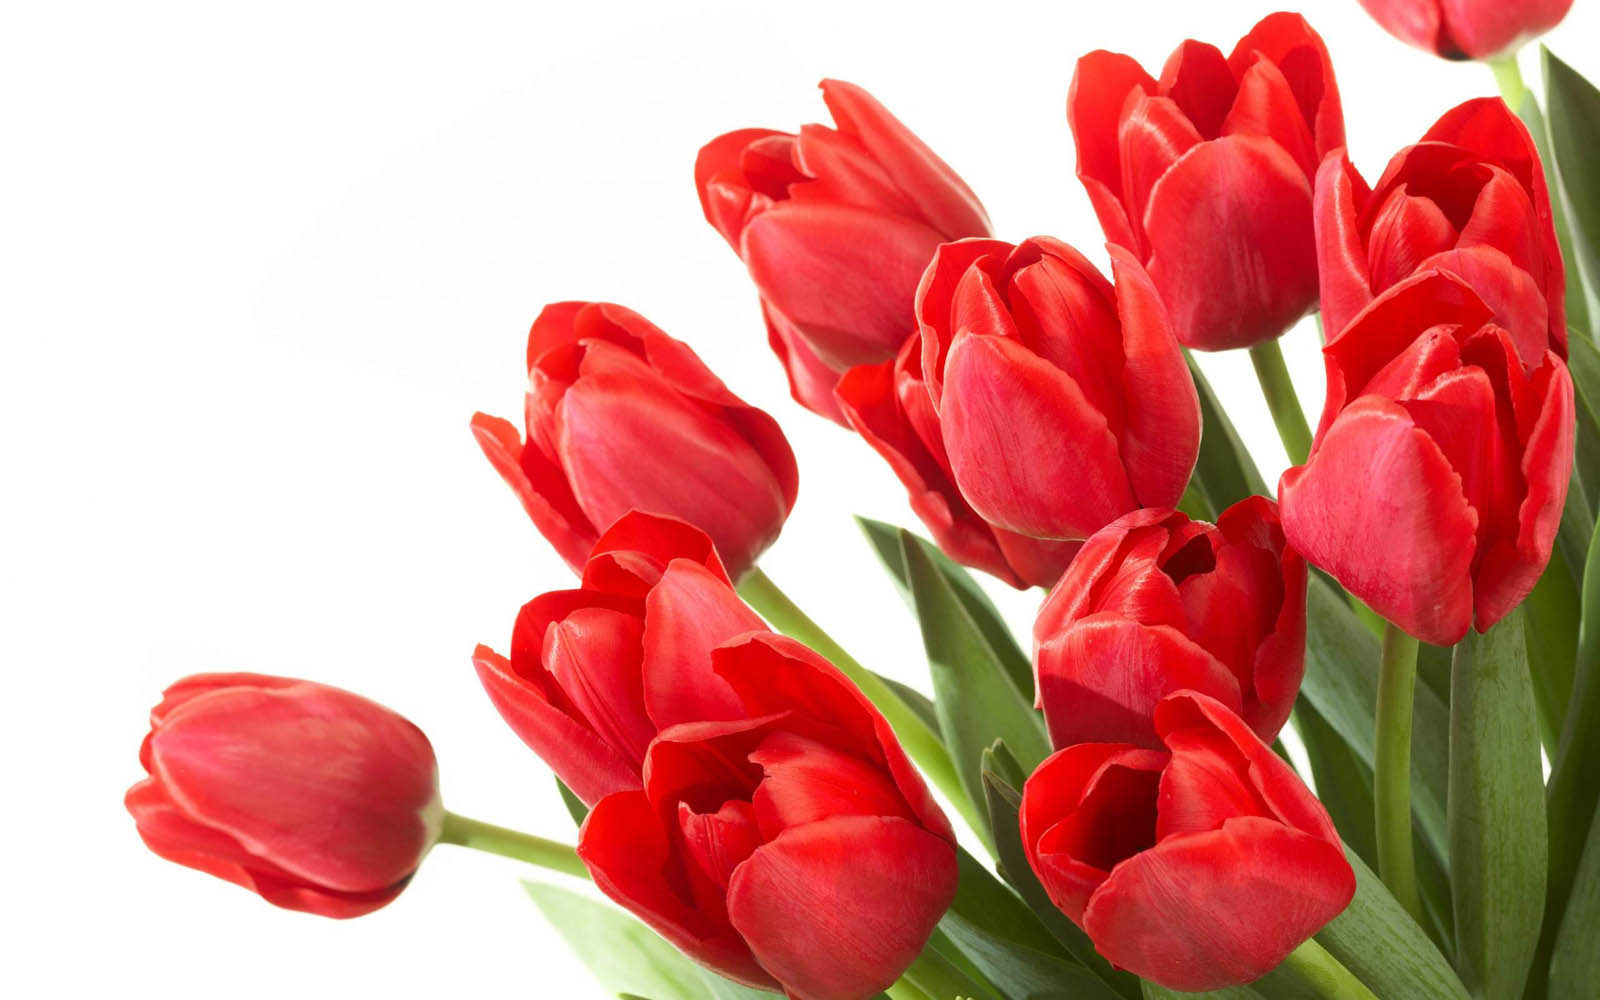 Tulip wallpapers hd - PNG Bunga Tulip